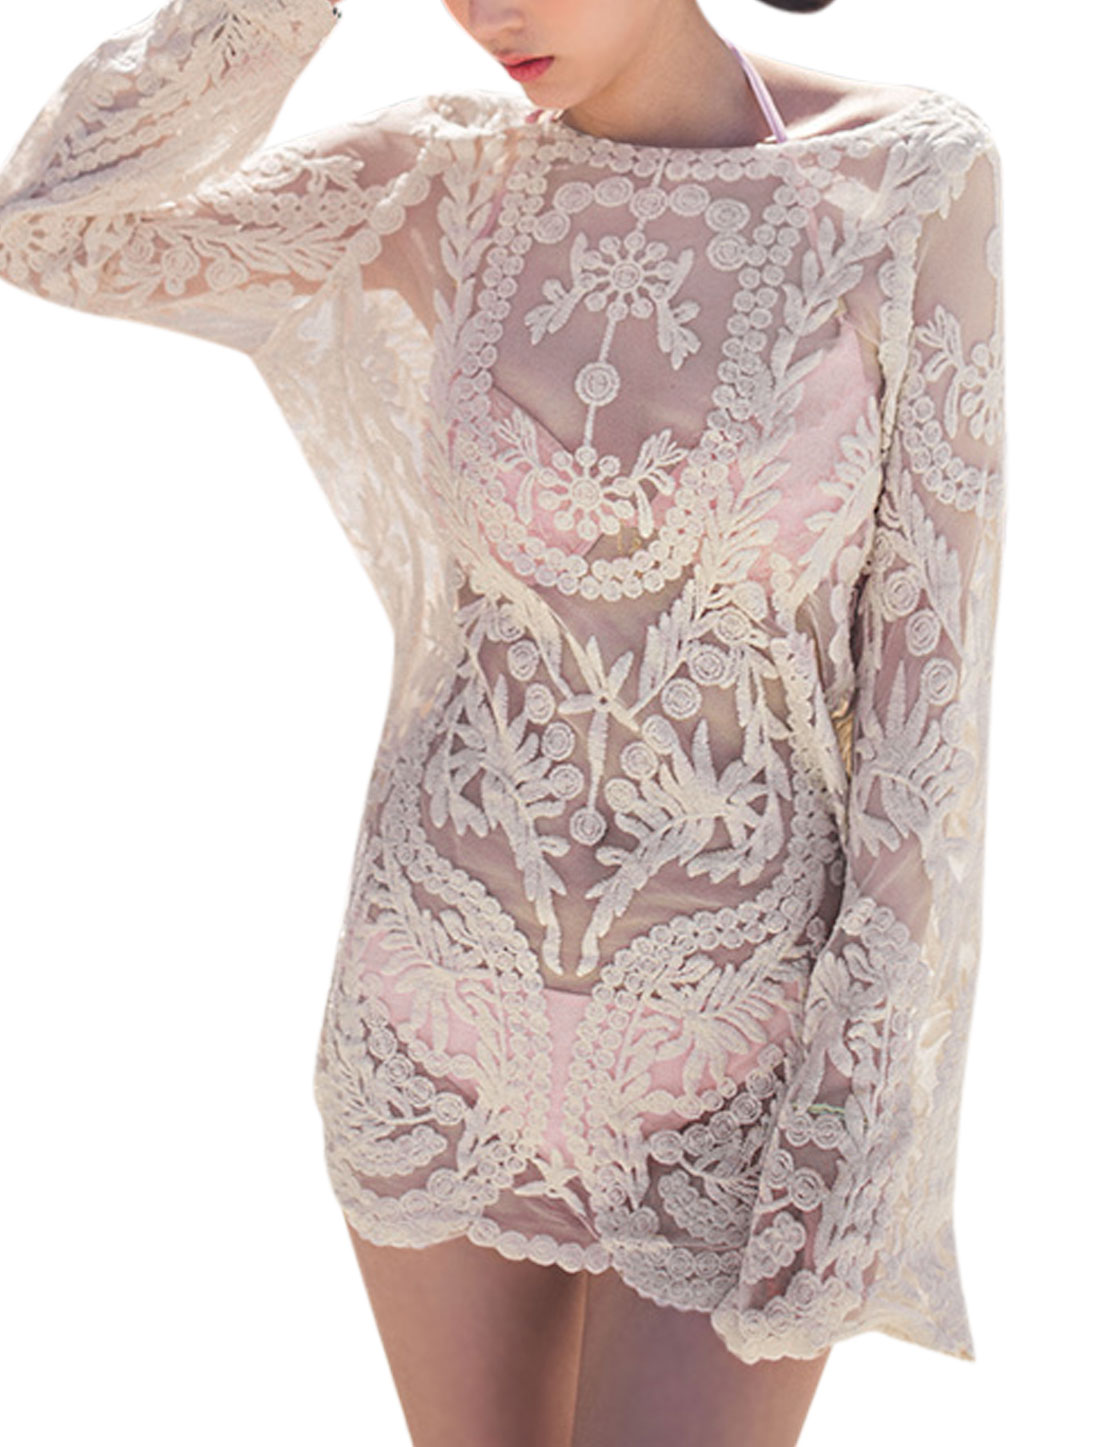 Woman Floral Stitching Long Sleeves Scalloped Hem Lace Tunic Top Beige XS